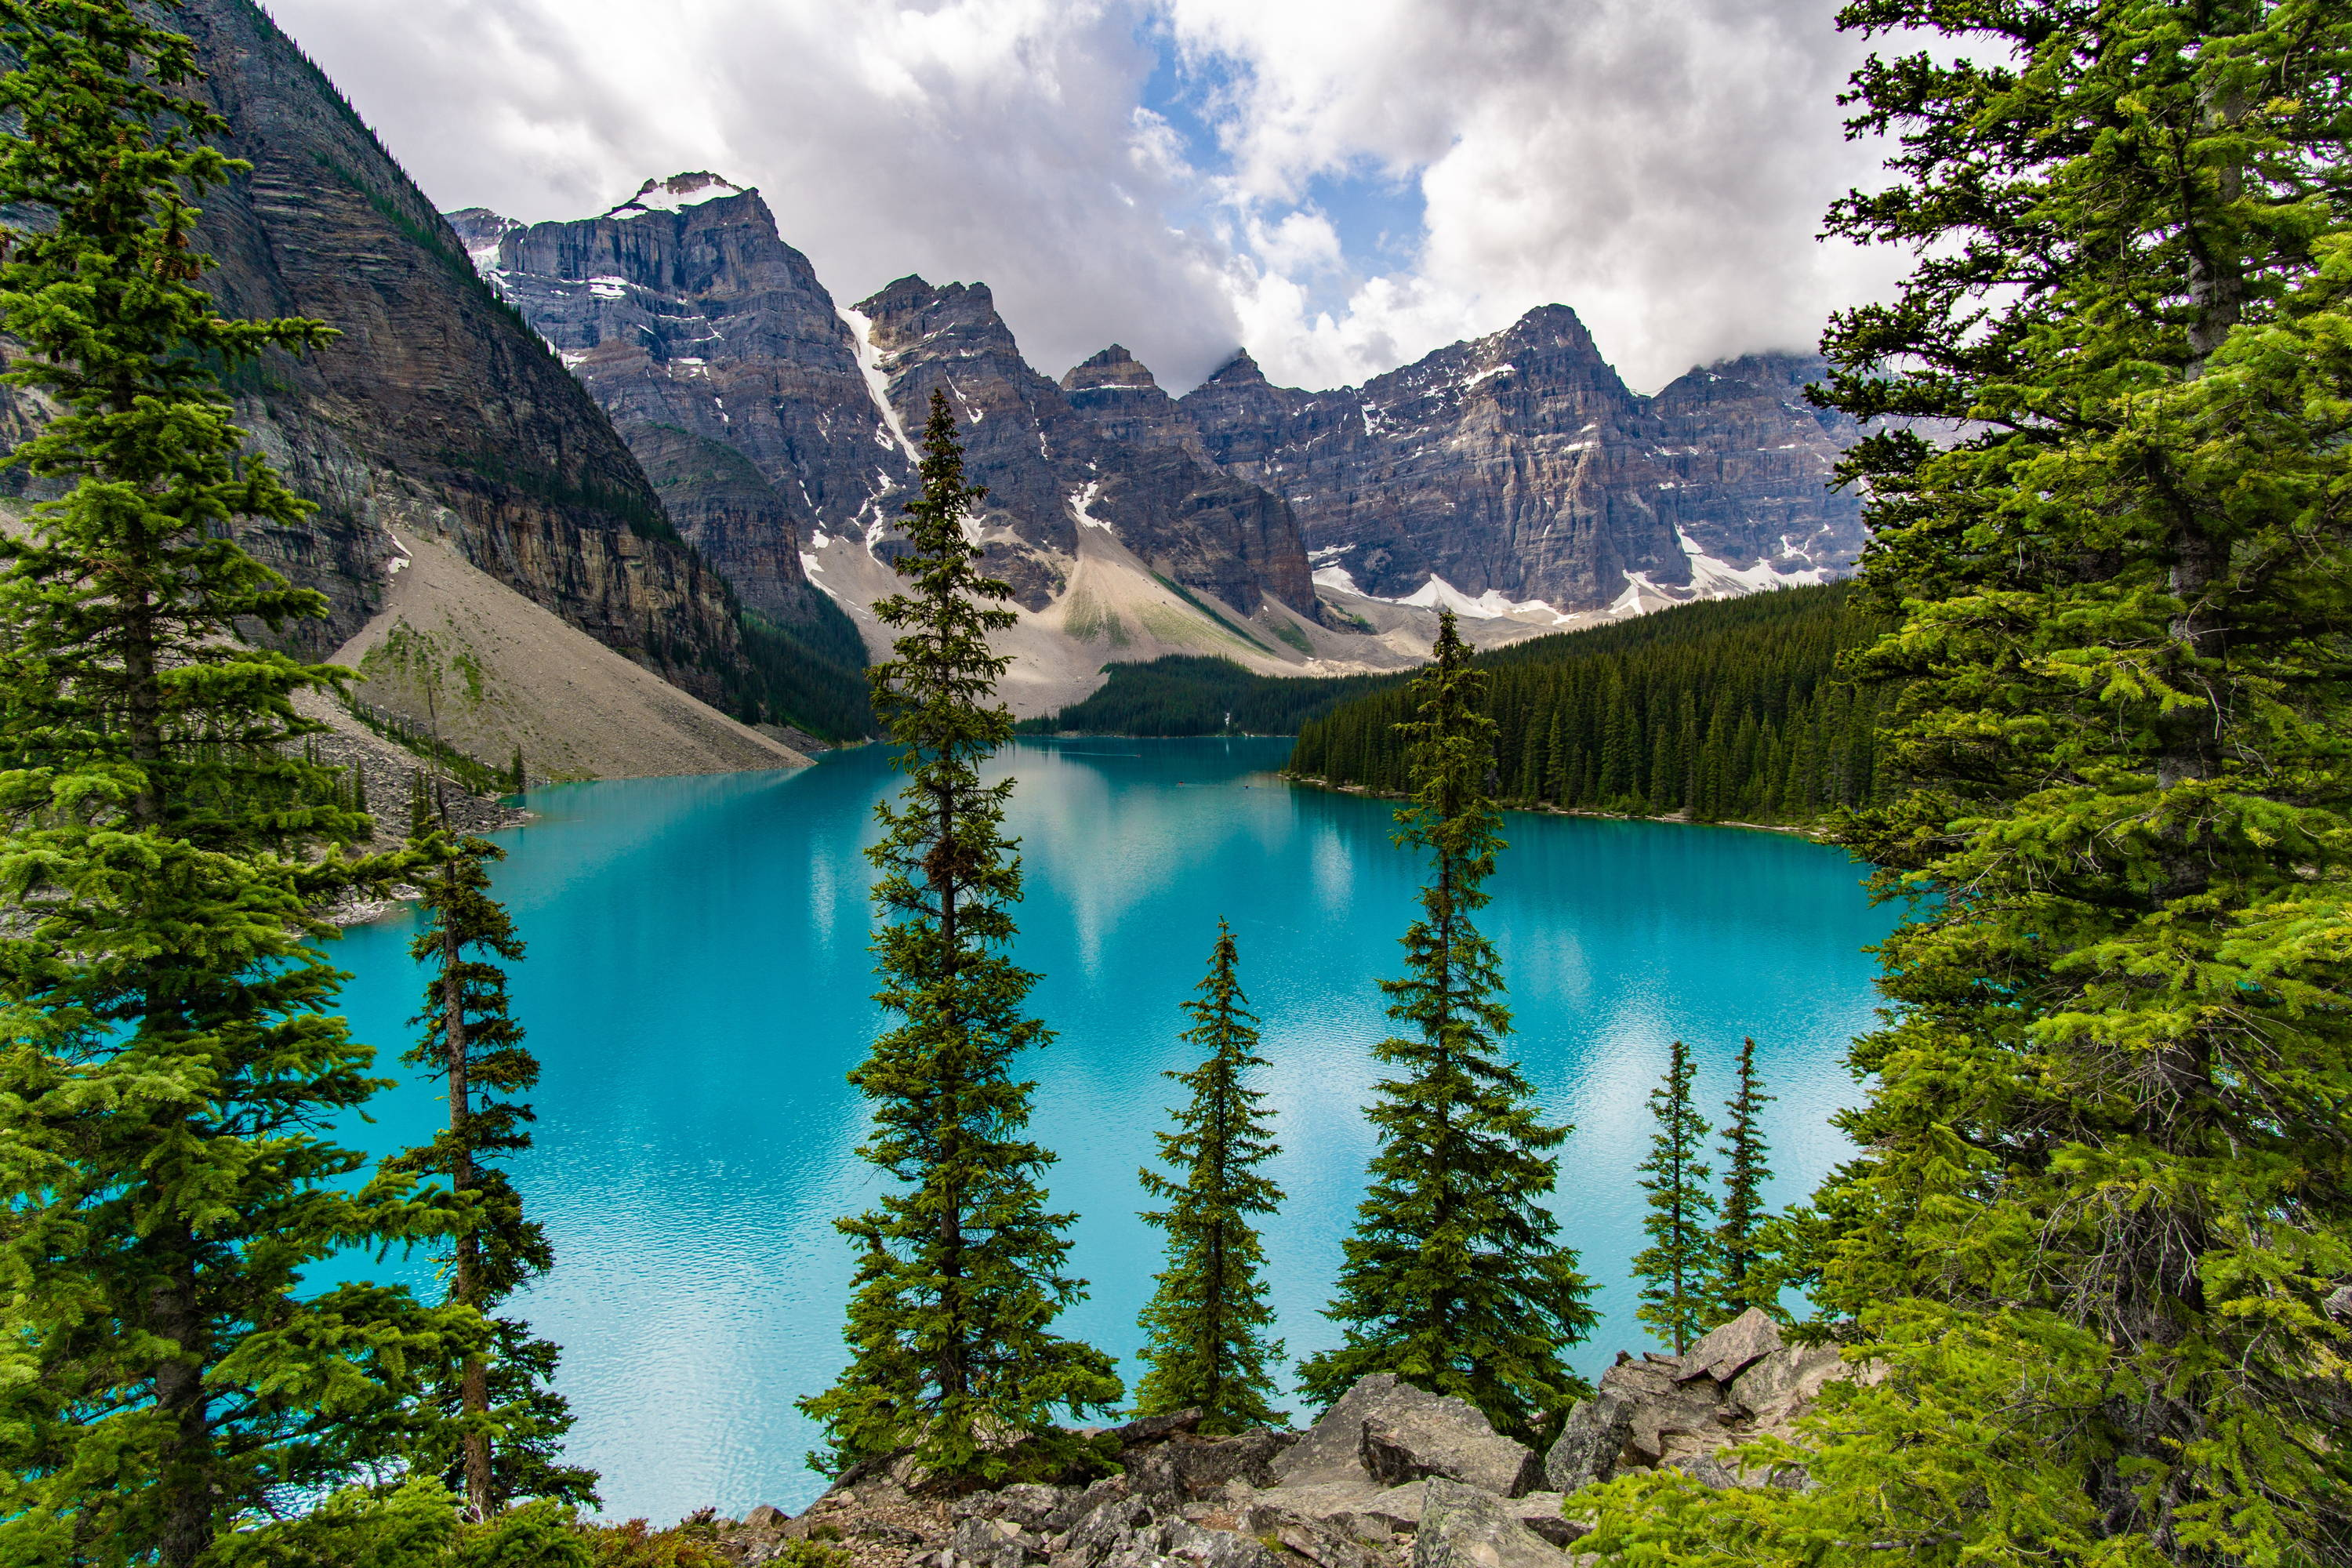 Things to Do in Banff: Blue glacier lake surrounded by evergreen trees to the right and foreground with stark mountains in the background.